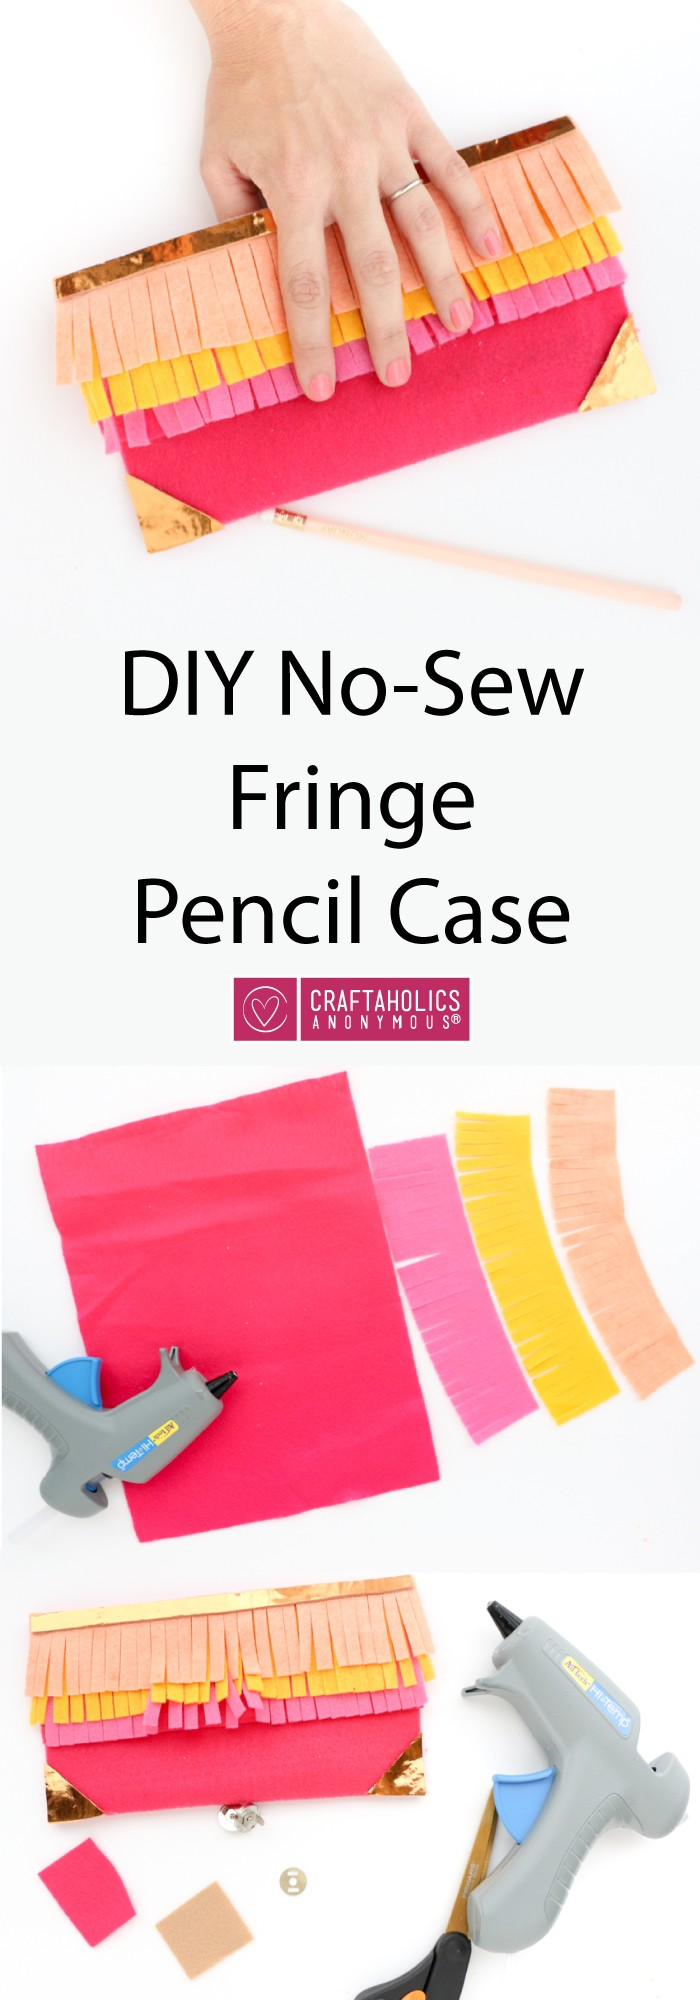 New-Sew Fringed Pencil Case! Easy back to school project at craftaholicsanonymous.net